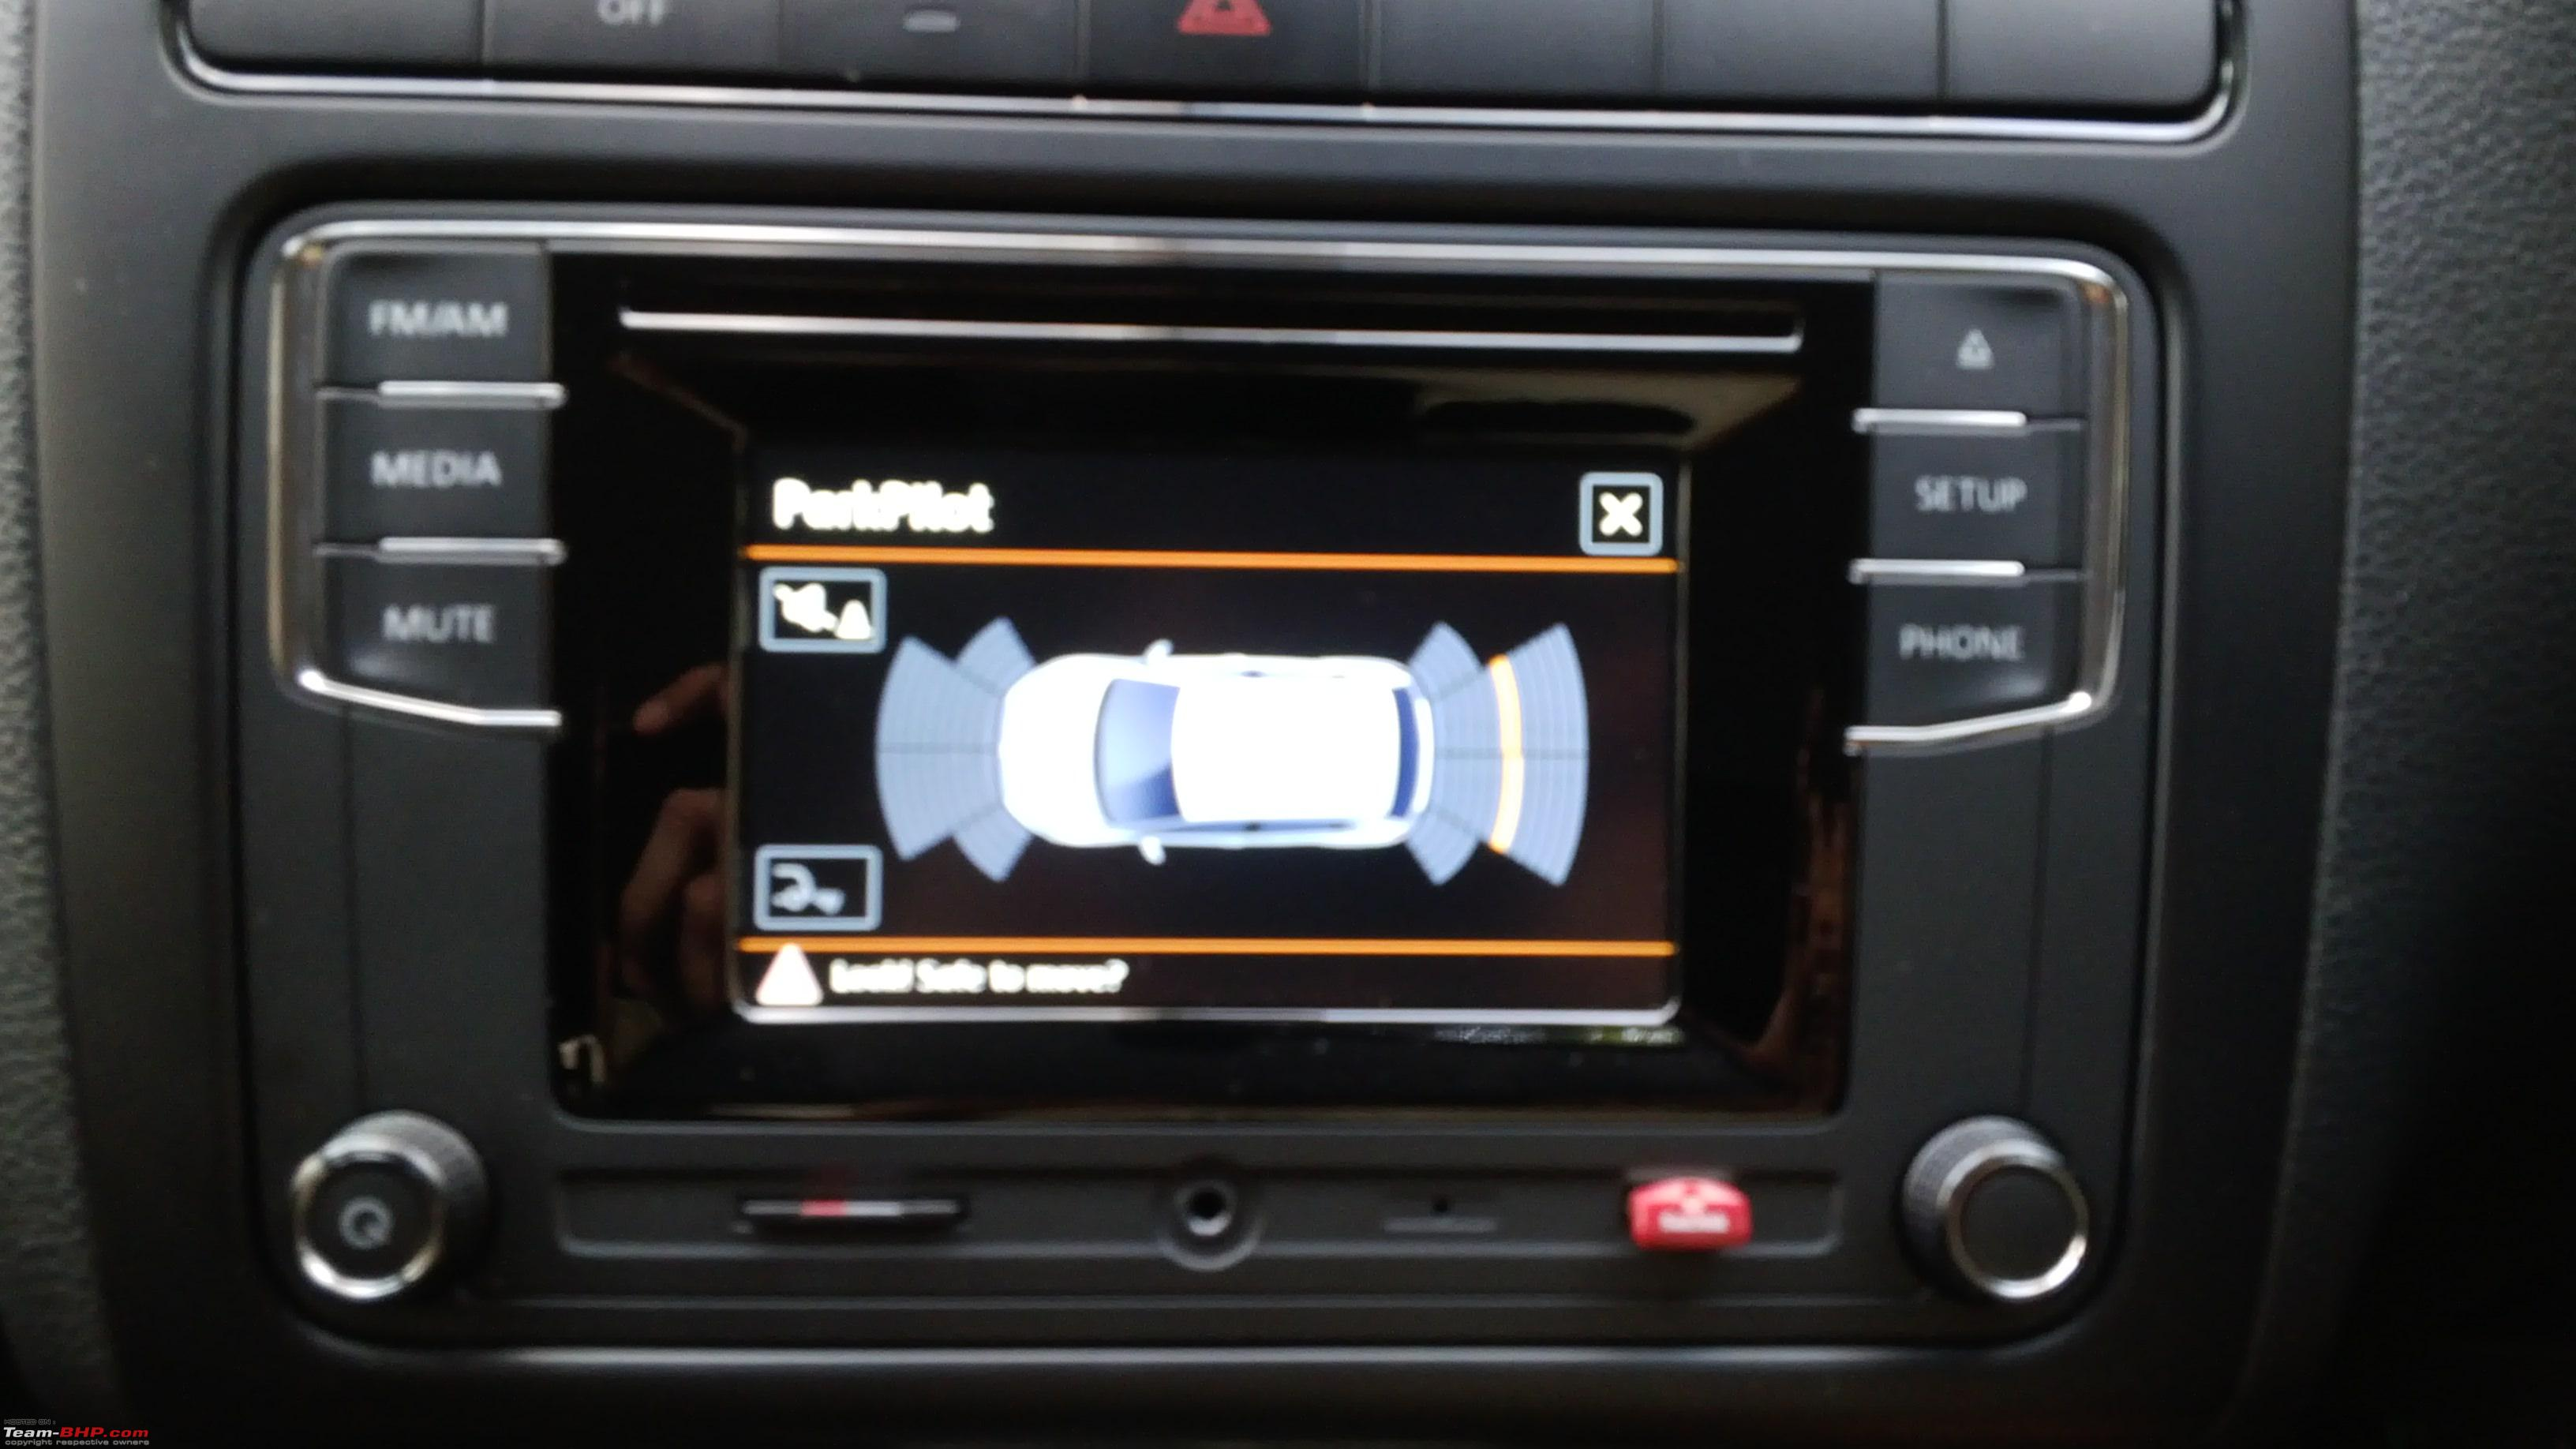 volkswagen golf radio wiring diagram 2003 jeep wrangler www toyskids co vw polo vento replaced stock rcd320 with rcd330 plus mk2